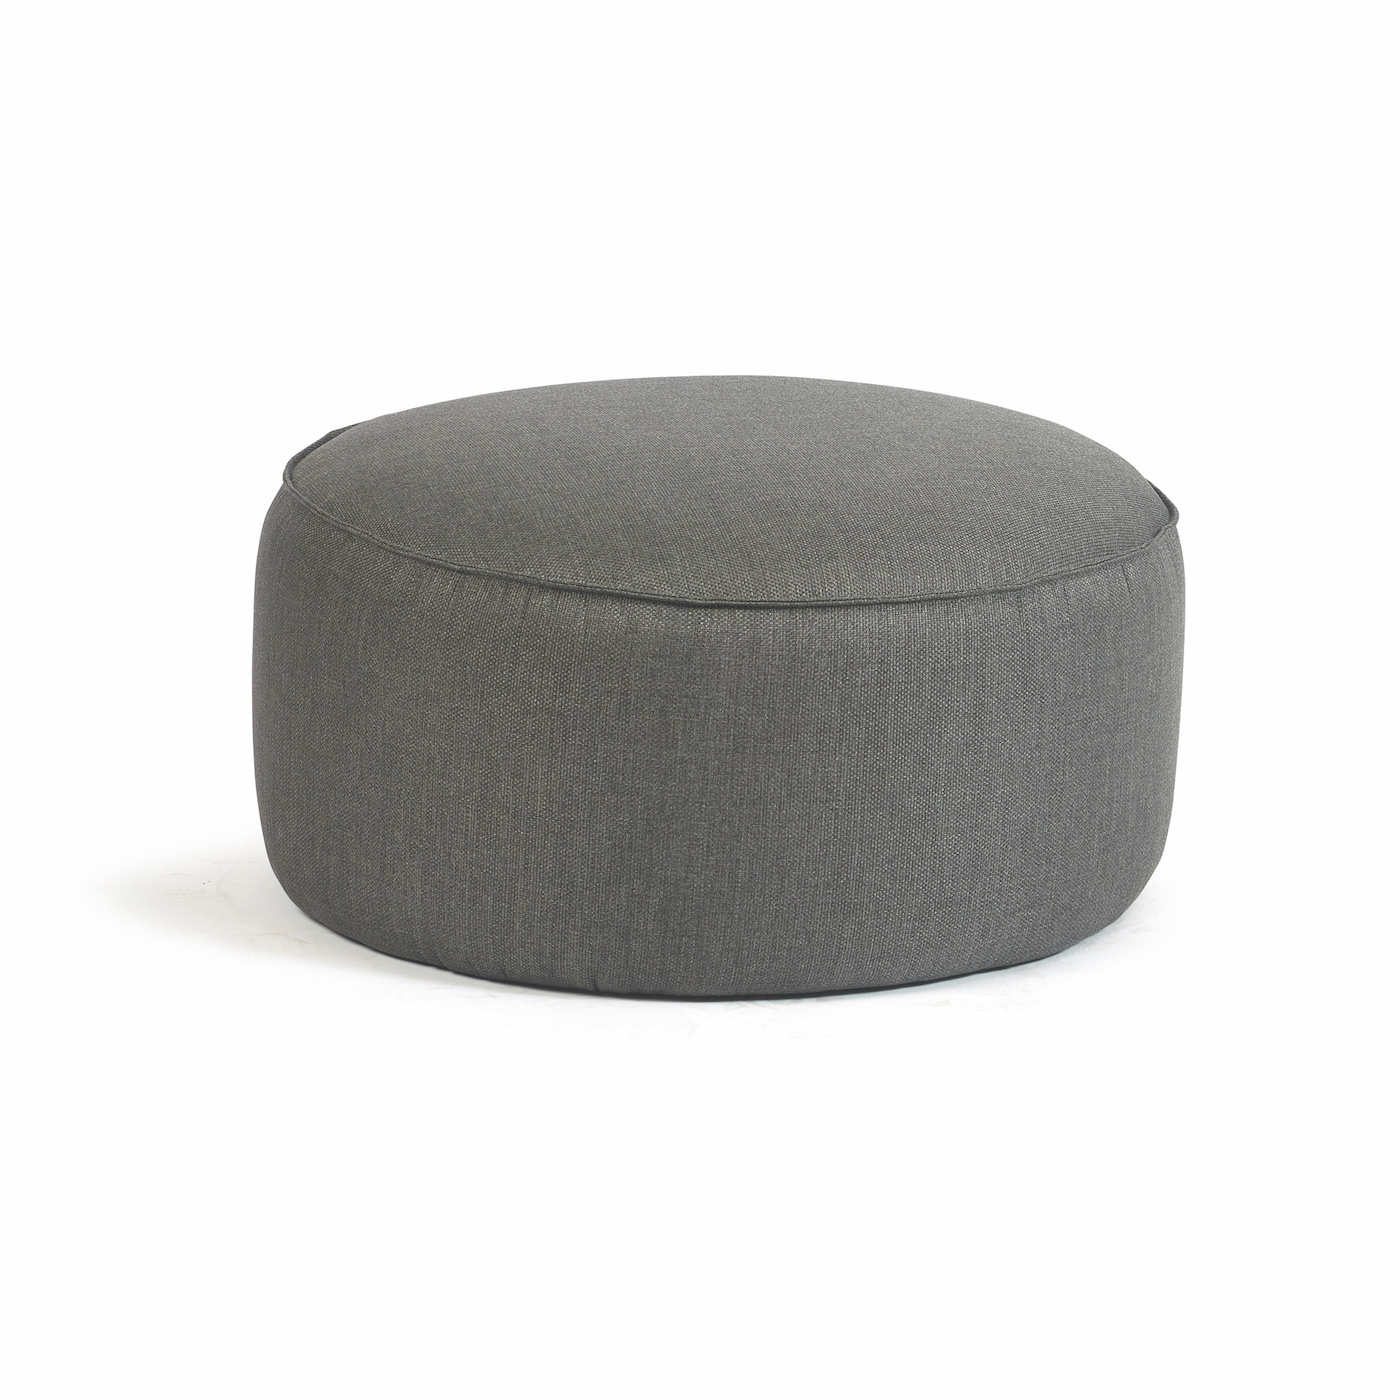 Easy-Fit Low Round Pouf 15